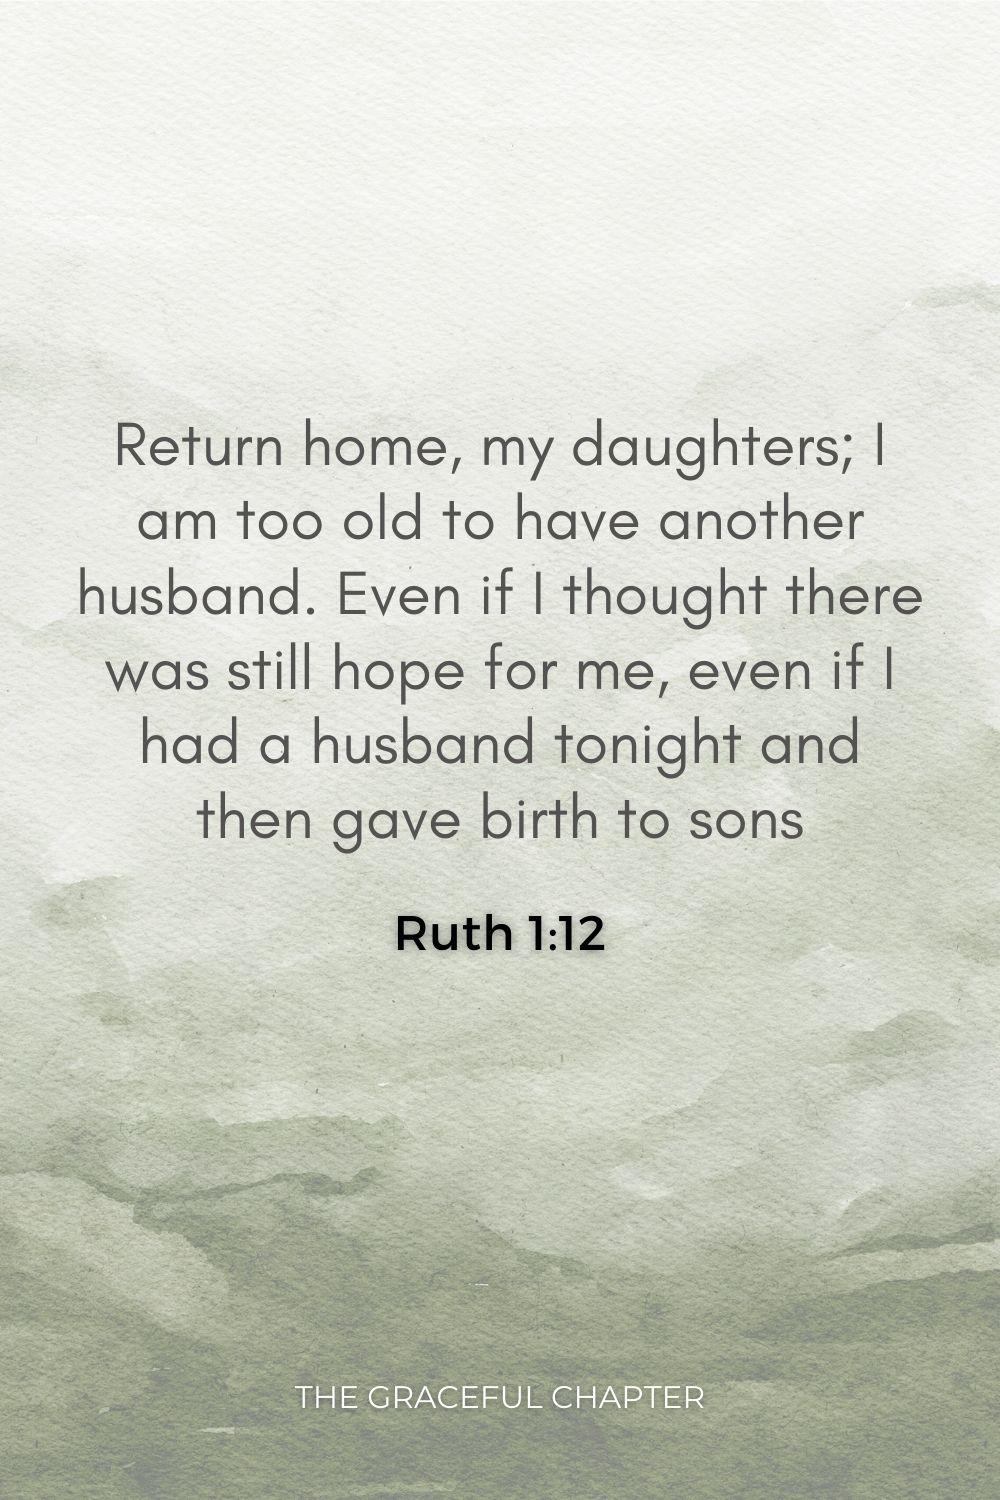 Return home, my daughters; I am too old to have another husband. Even if I thought there was still hope for me, even if I had a husband tonight and then gave birth to sons Ruth 1:12